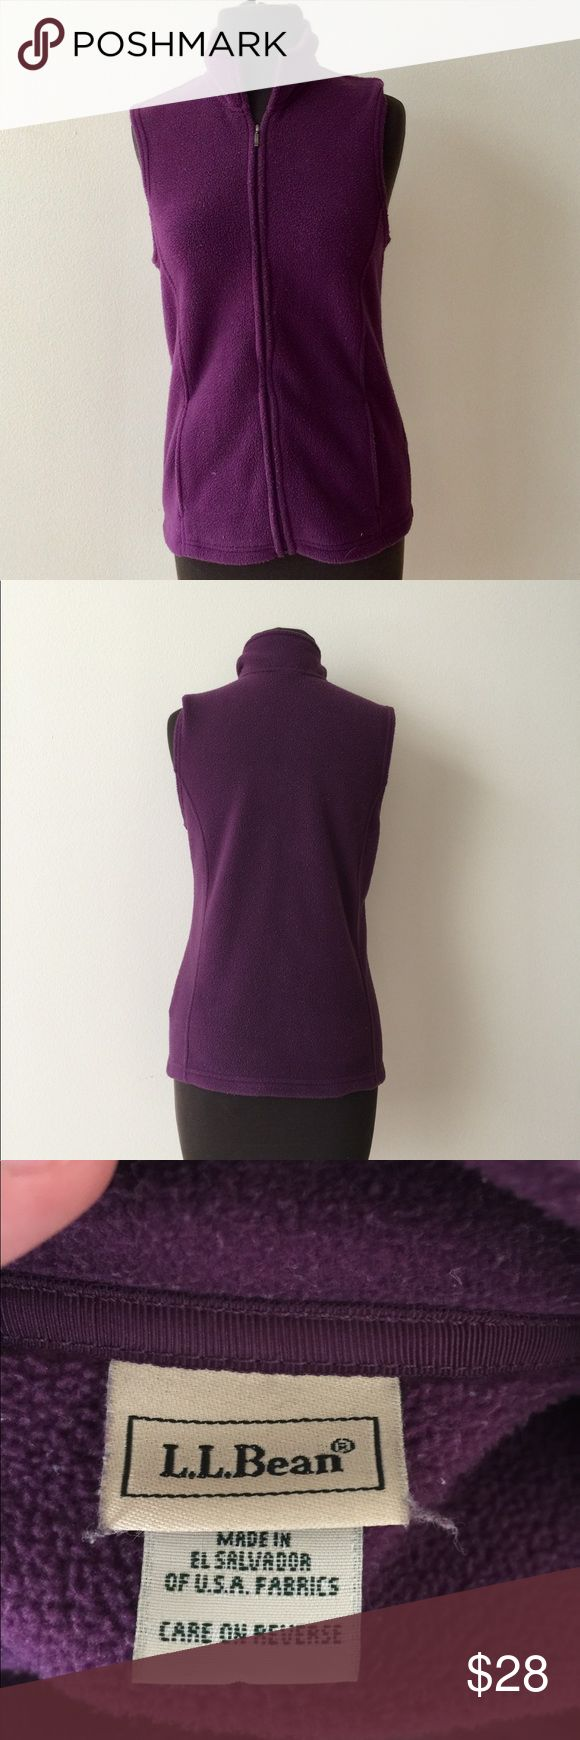 ❗️LL Bean Purple Zip Up Fleece Vest MSRP $98 ❗️LL Bean Purple Fleece Zip Up Vest. Retails $98. Size small in good condition. Buy this item at list price & get any 2nd item of equal or lesser value FREE! OR feel free to make an offer! I'm selling to the first reasonable offer I receive! Huge Clearout Sale for the holidays! L.L. Bean Jackets & Coats Vests